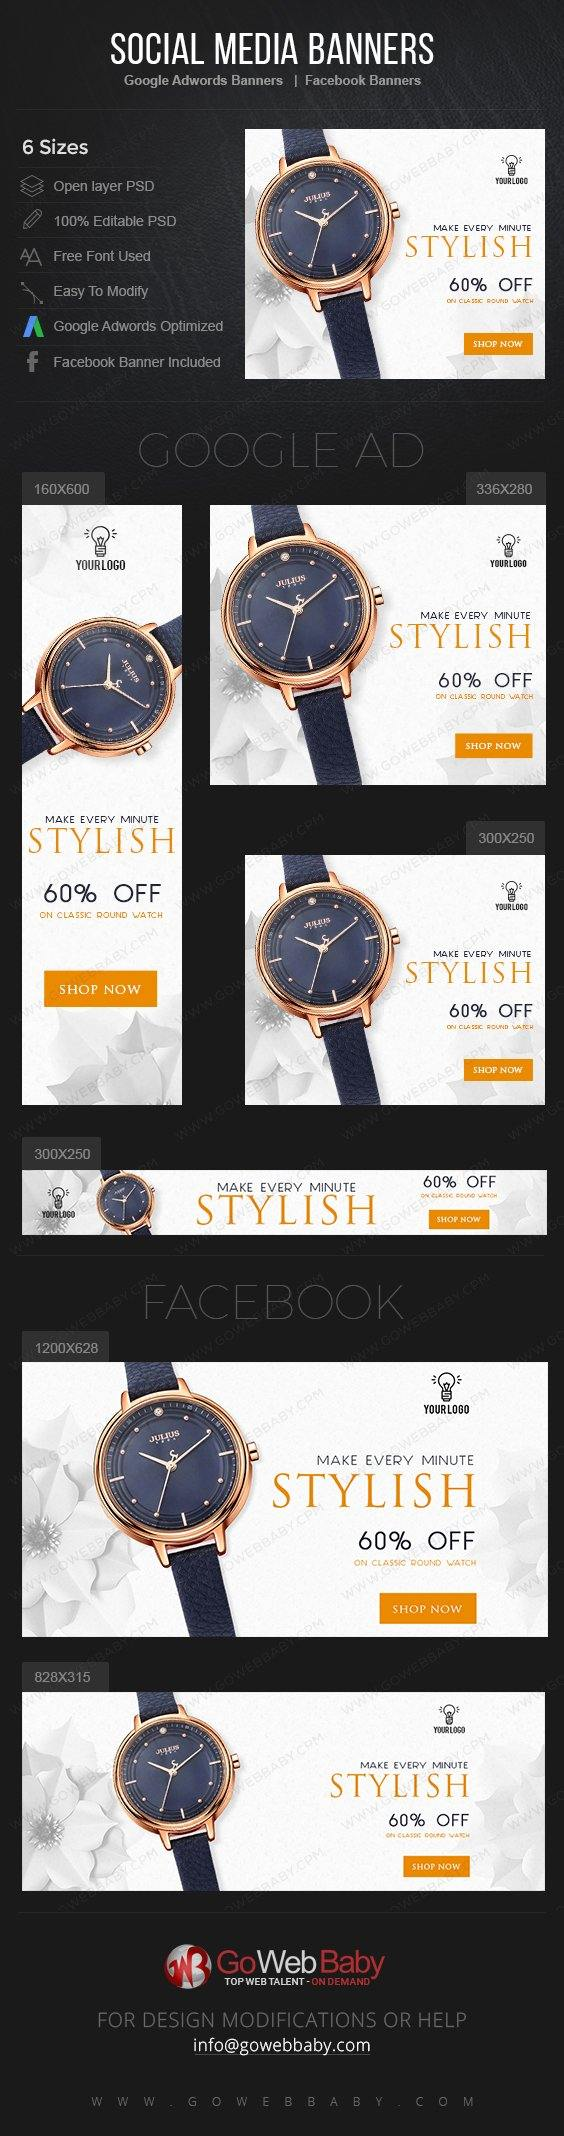 Google Adwords Display Banner With Facebook Banners - Stylish Watch For Website Marketing - GoWebBaby.Com